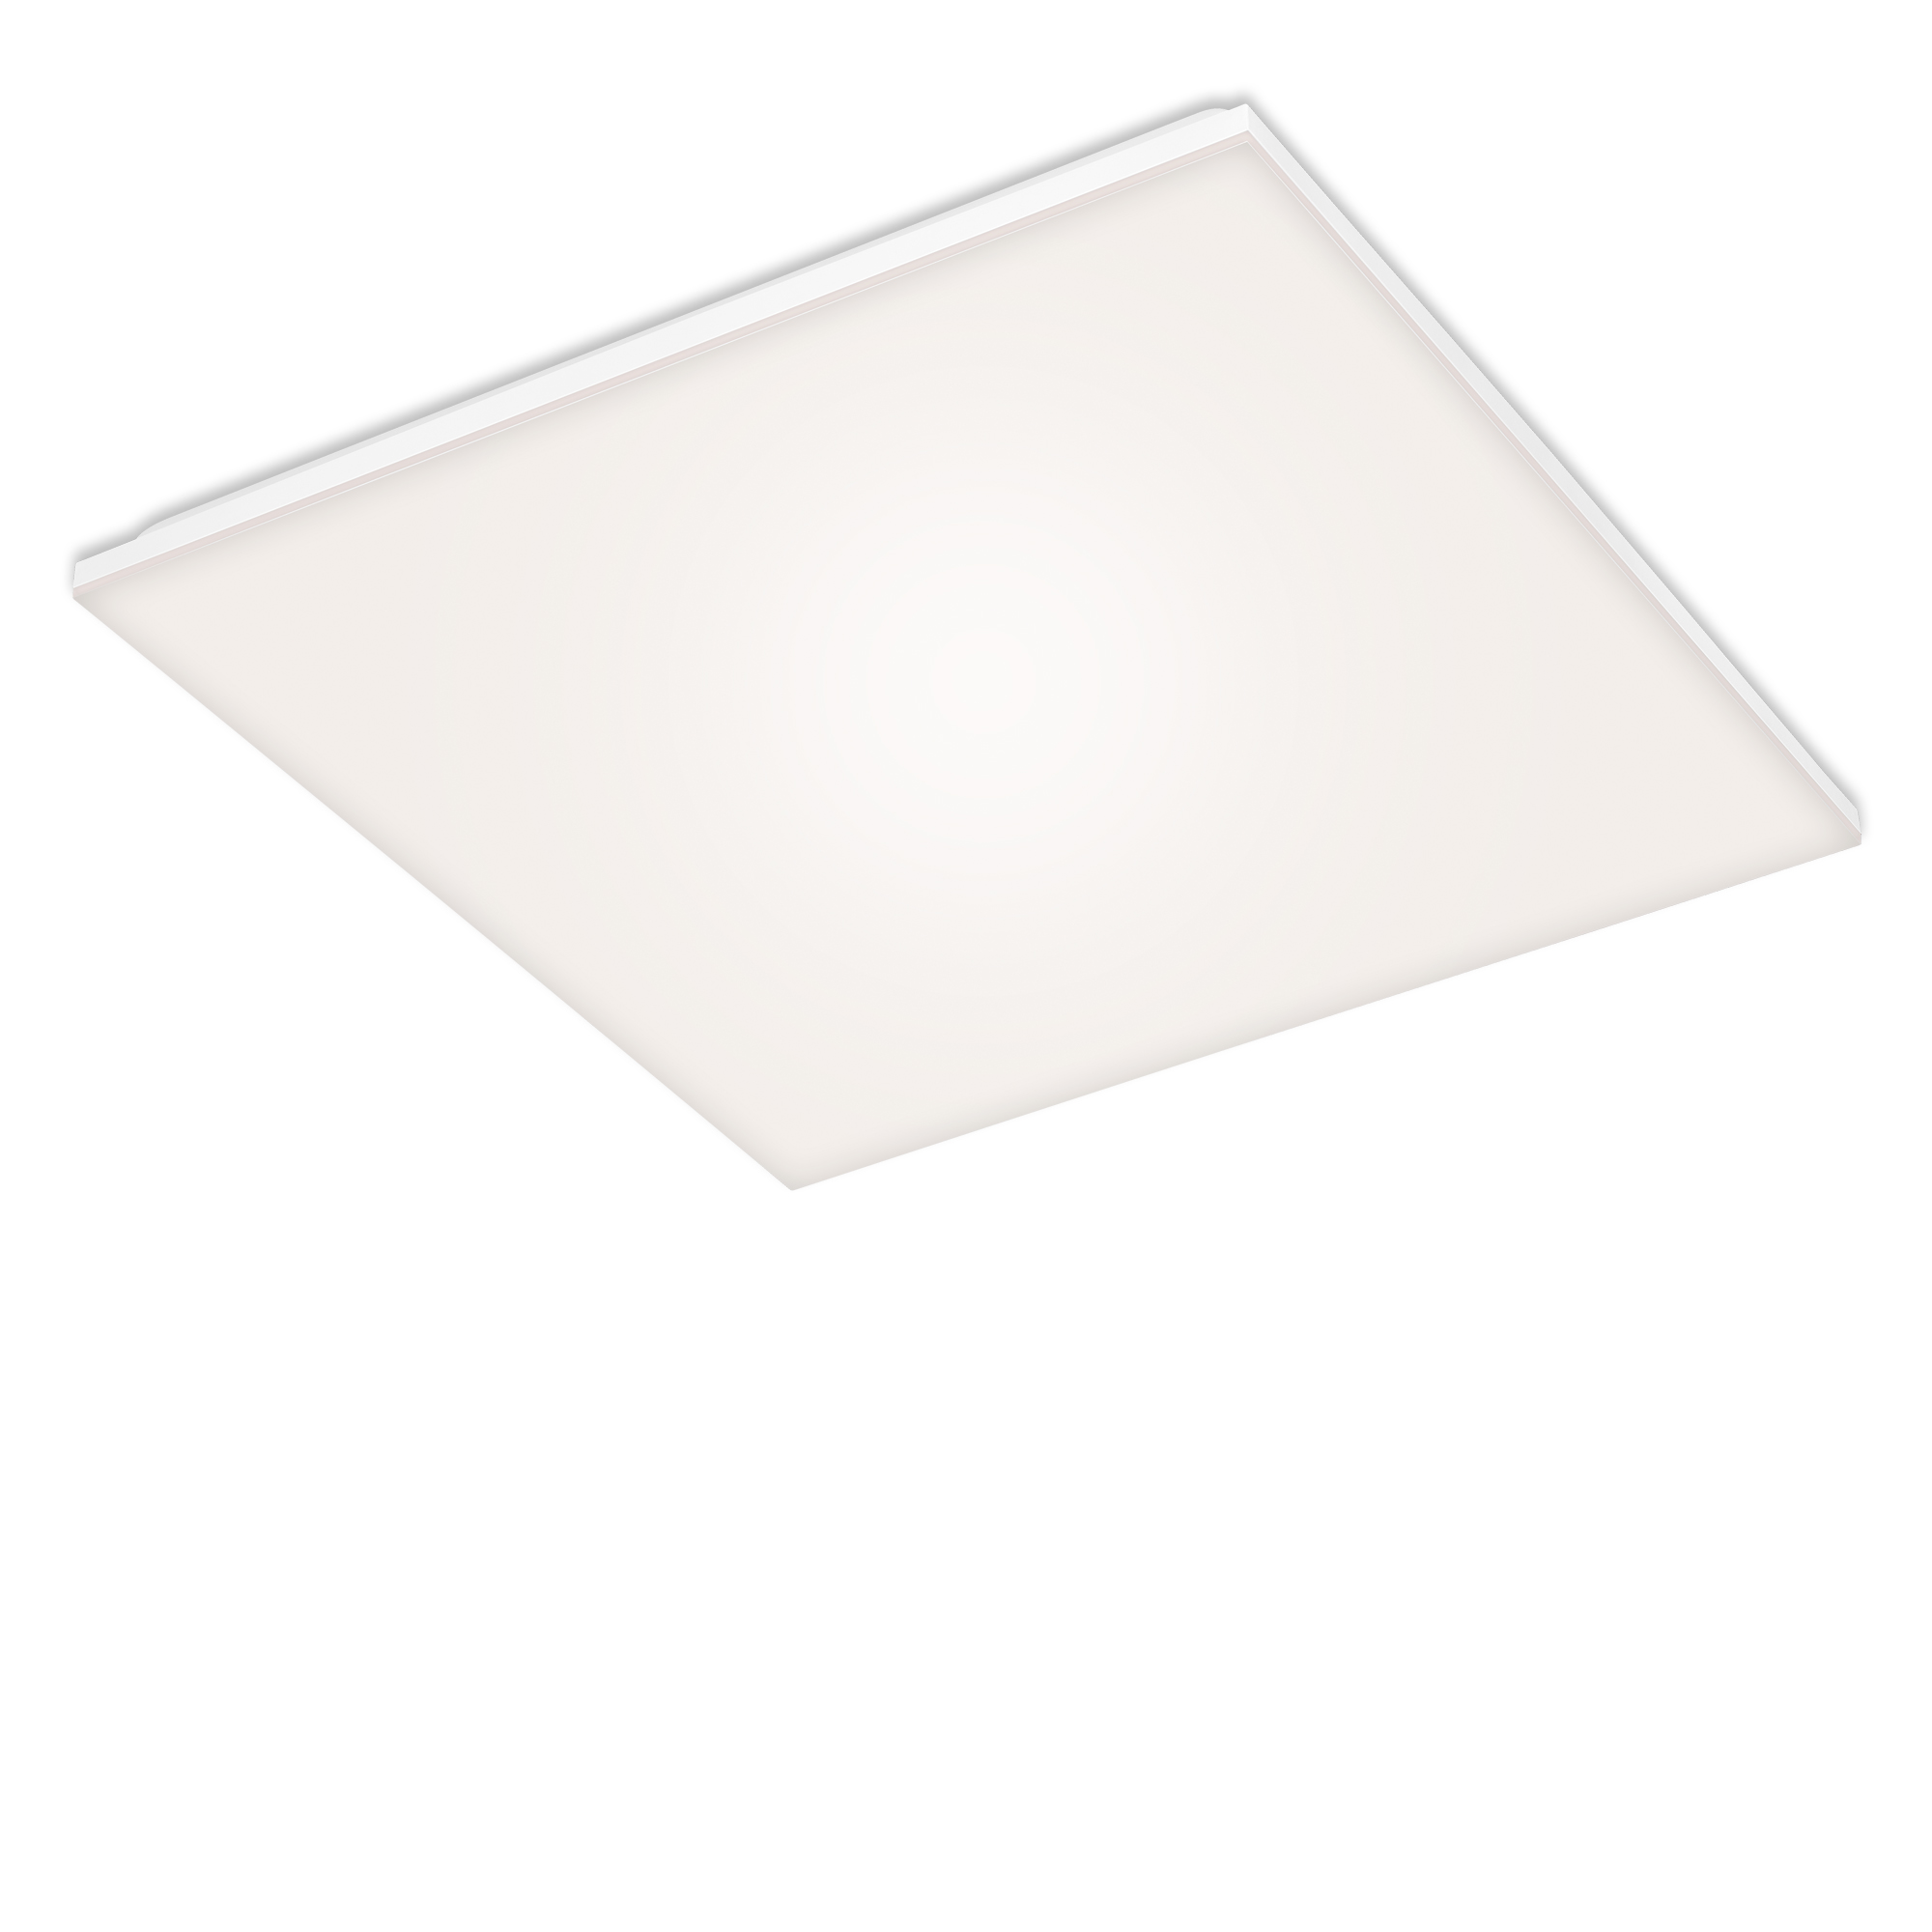 FRAMELESS LED Panel, 59,5 cm, 3800 LUMEN, 38 WATT, Weiss